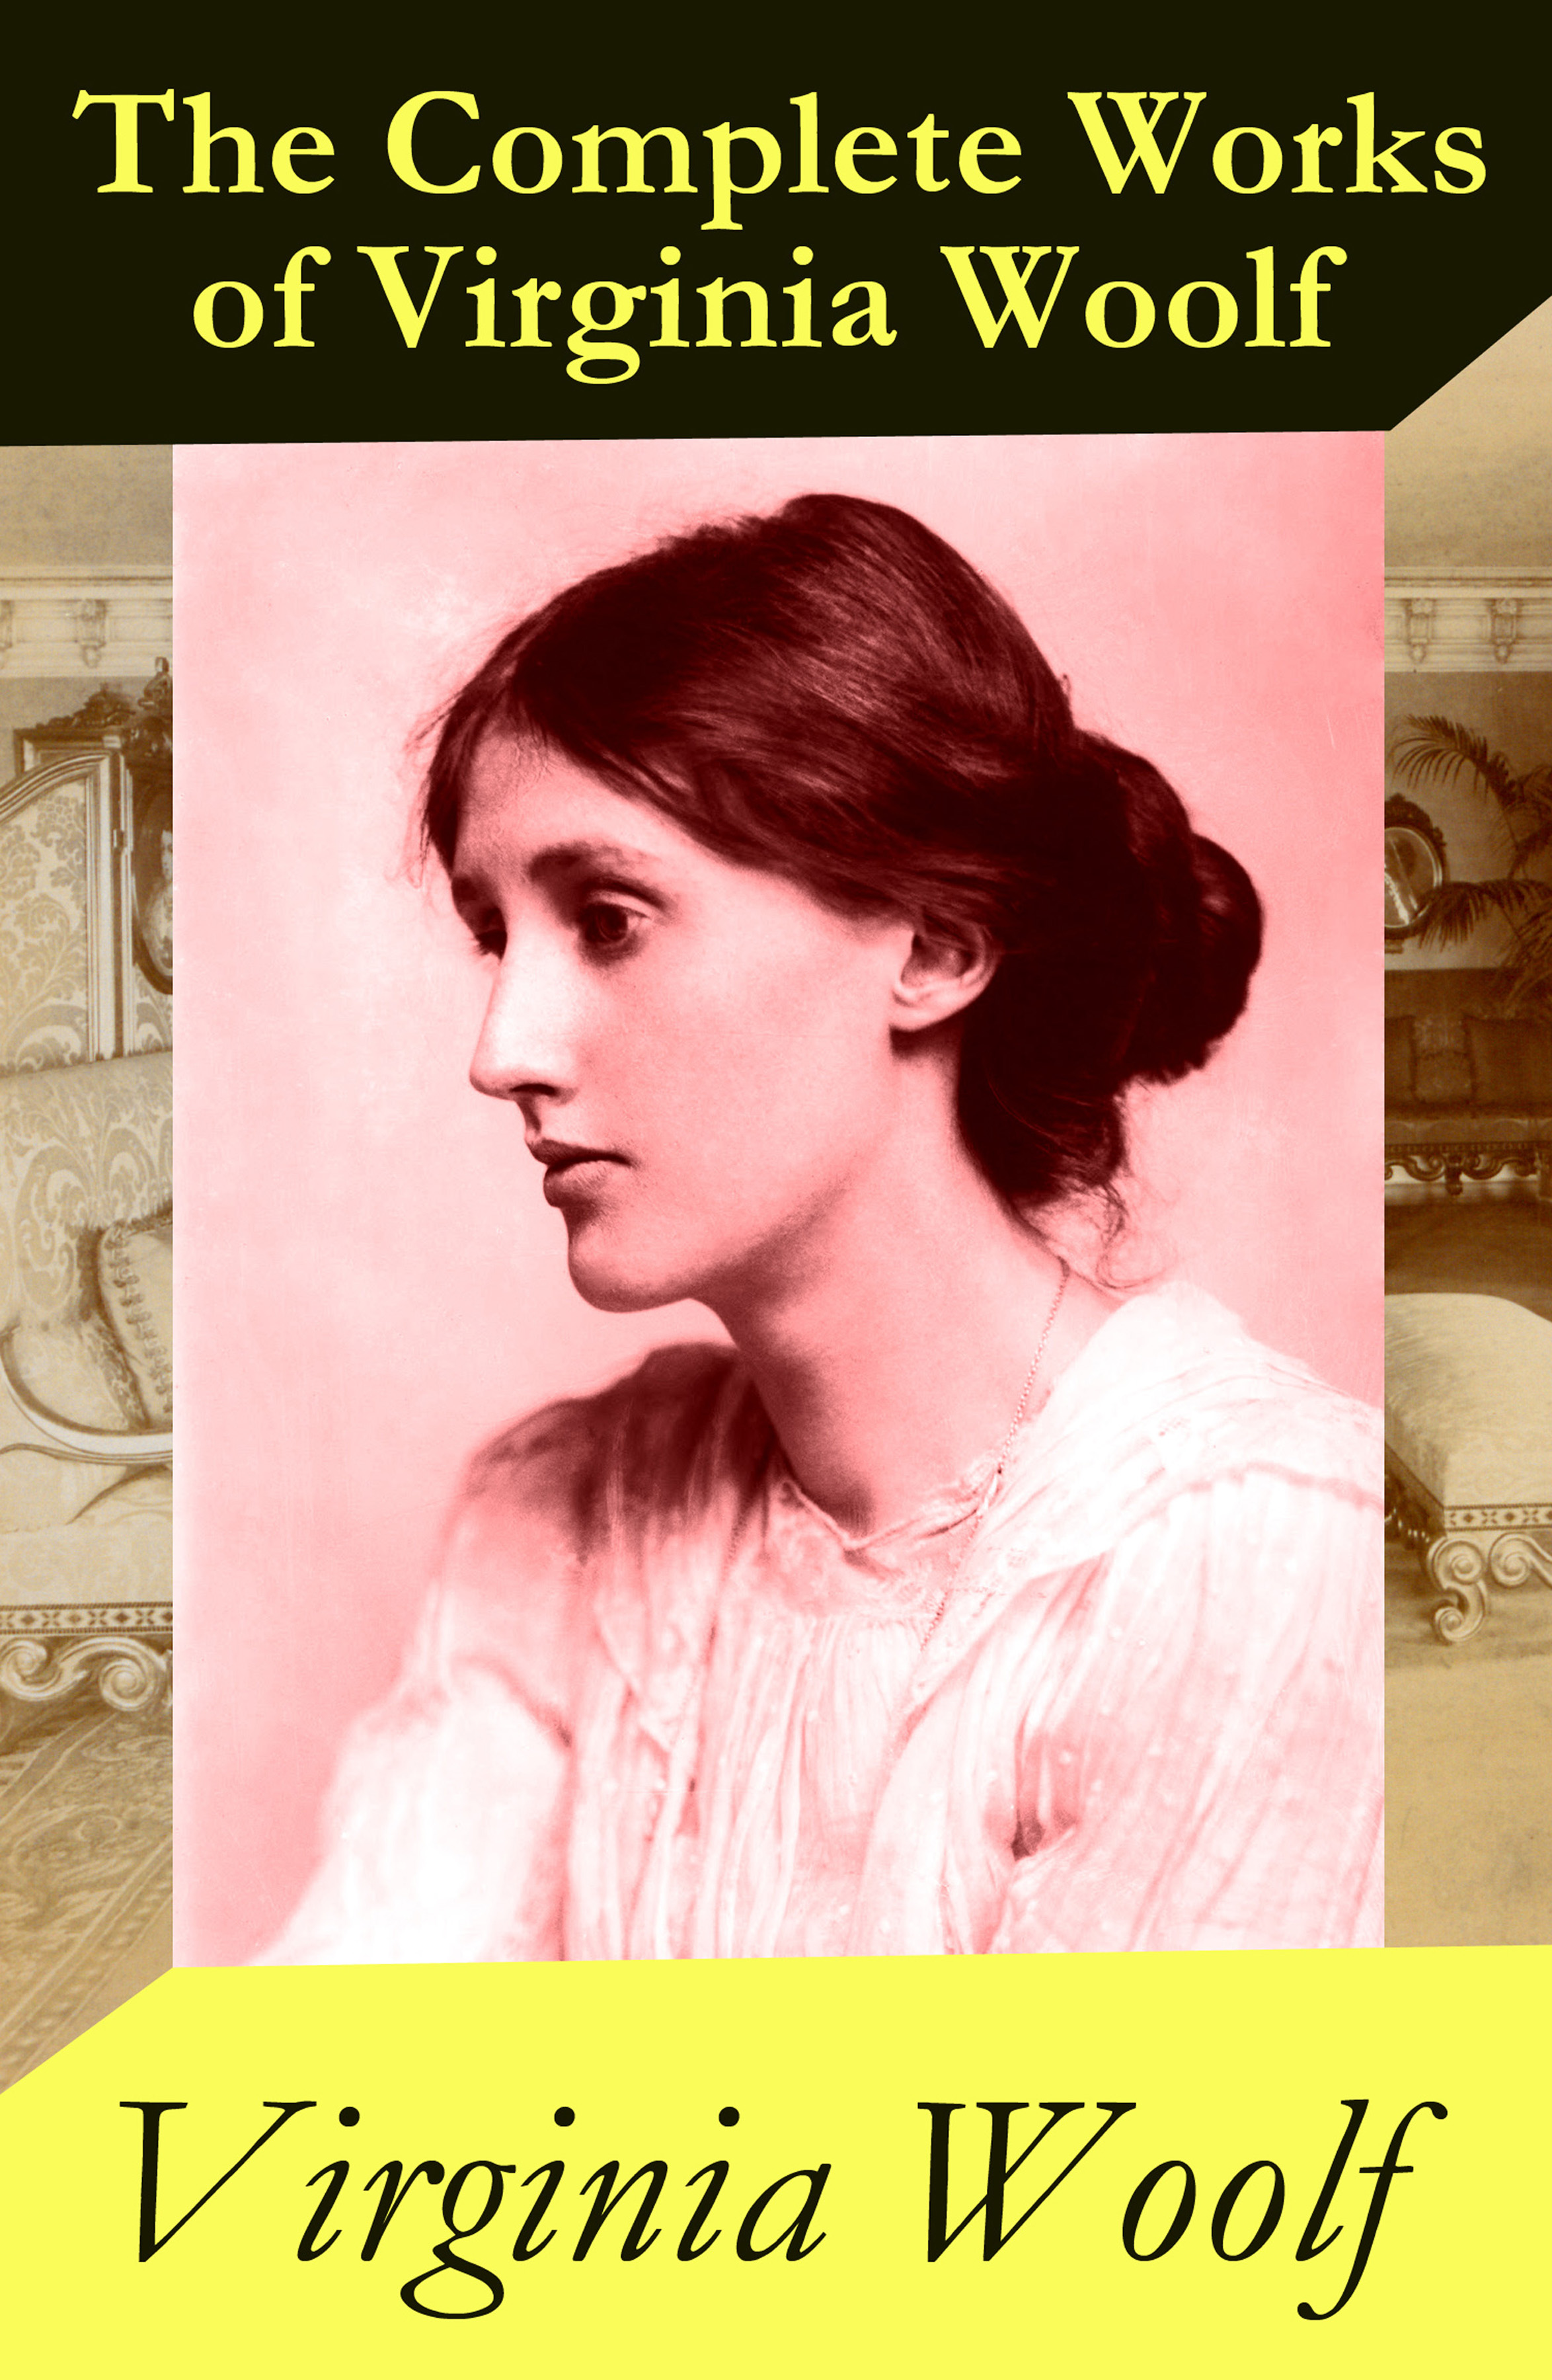 Virginia Woolf The (almost) Complete Works of Virginia Woolf virginia woolf the complete novels of virginia woolf 9 unabridged novels